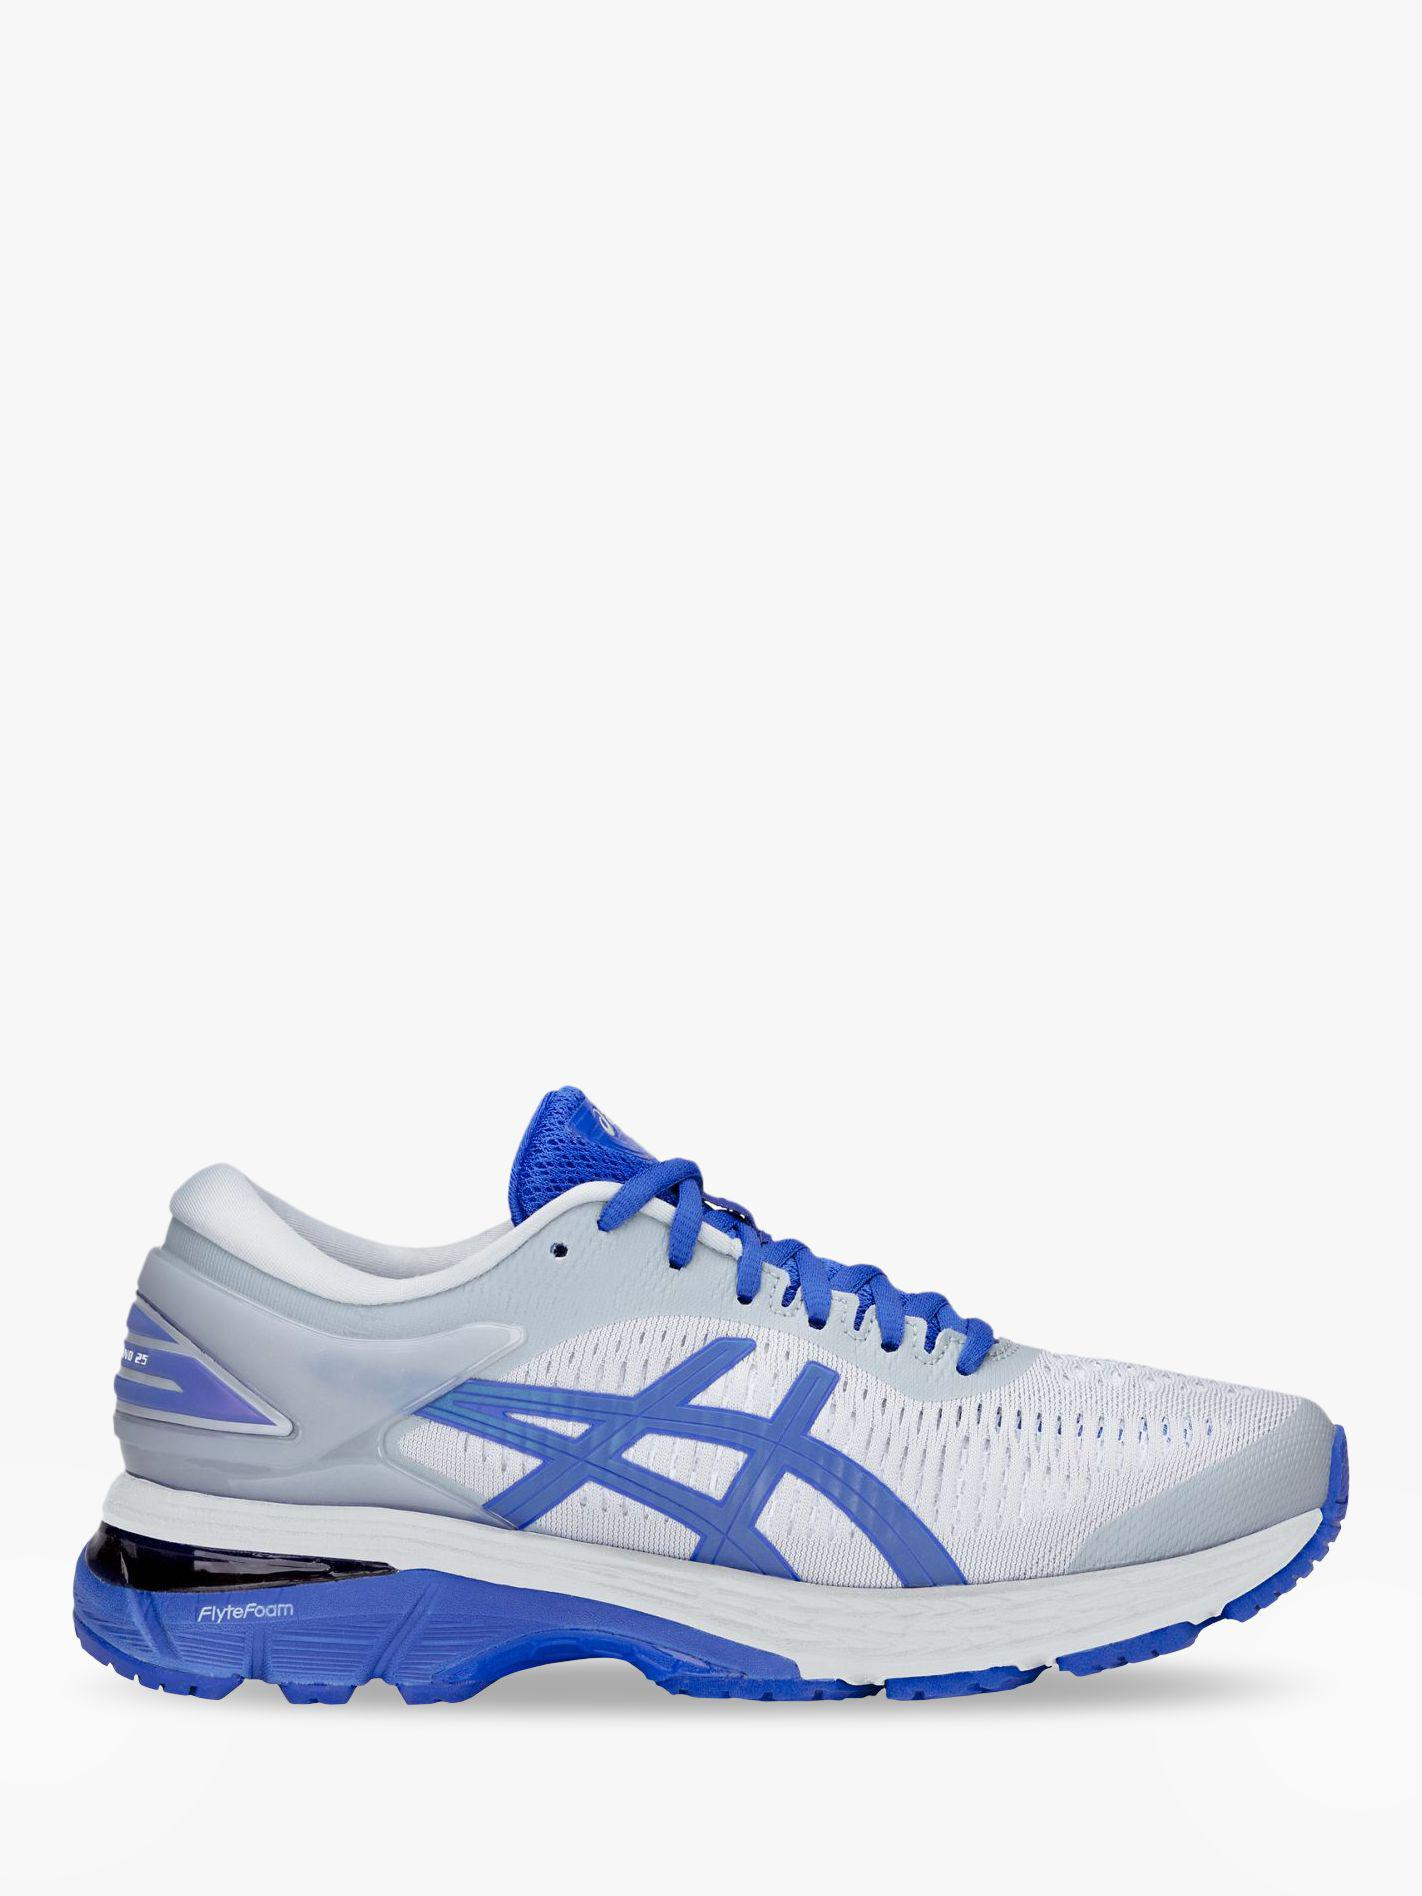 66b04f89872875 Asics. Blue Gel-kayano 25 Women s Running Shoes. £155 From John Lewis and  Partners